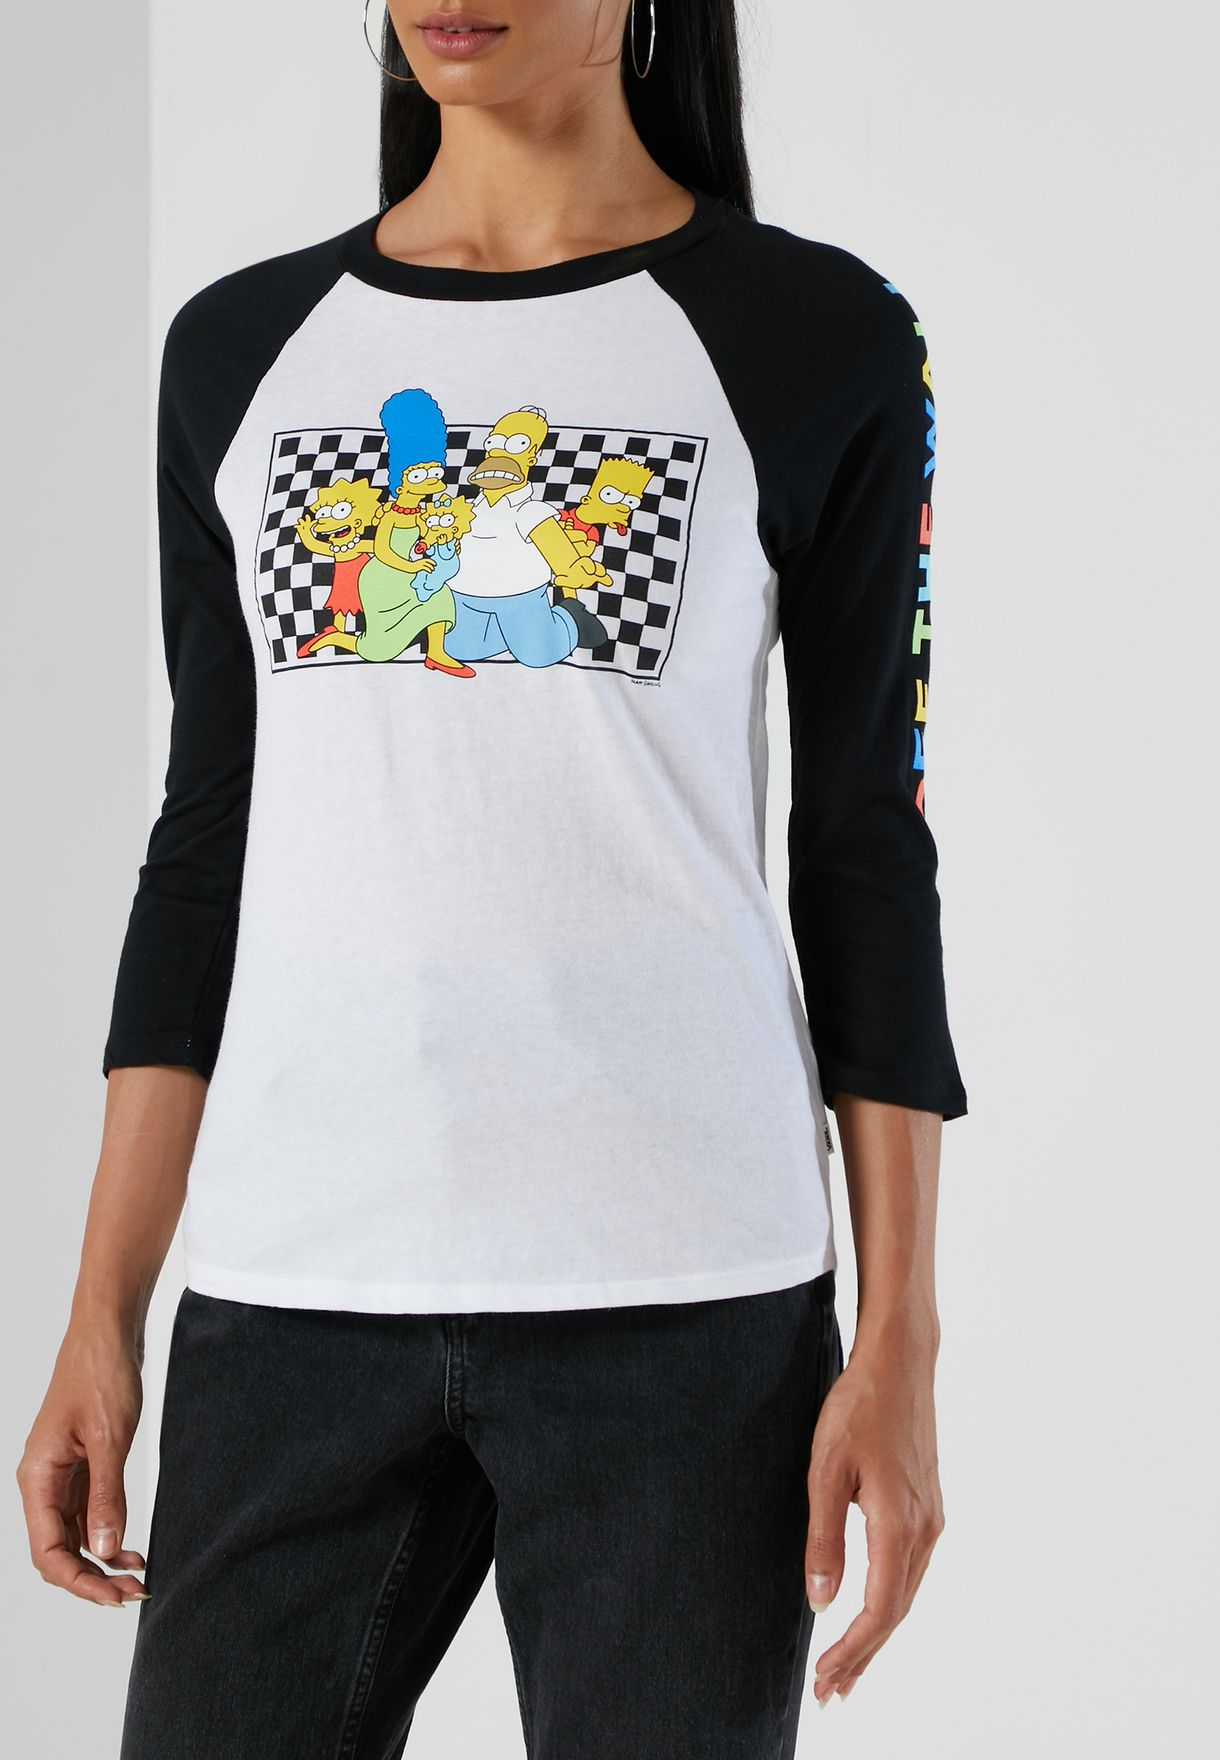 Simpsons Raglan T-Shirt